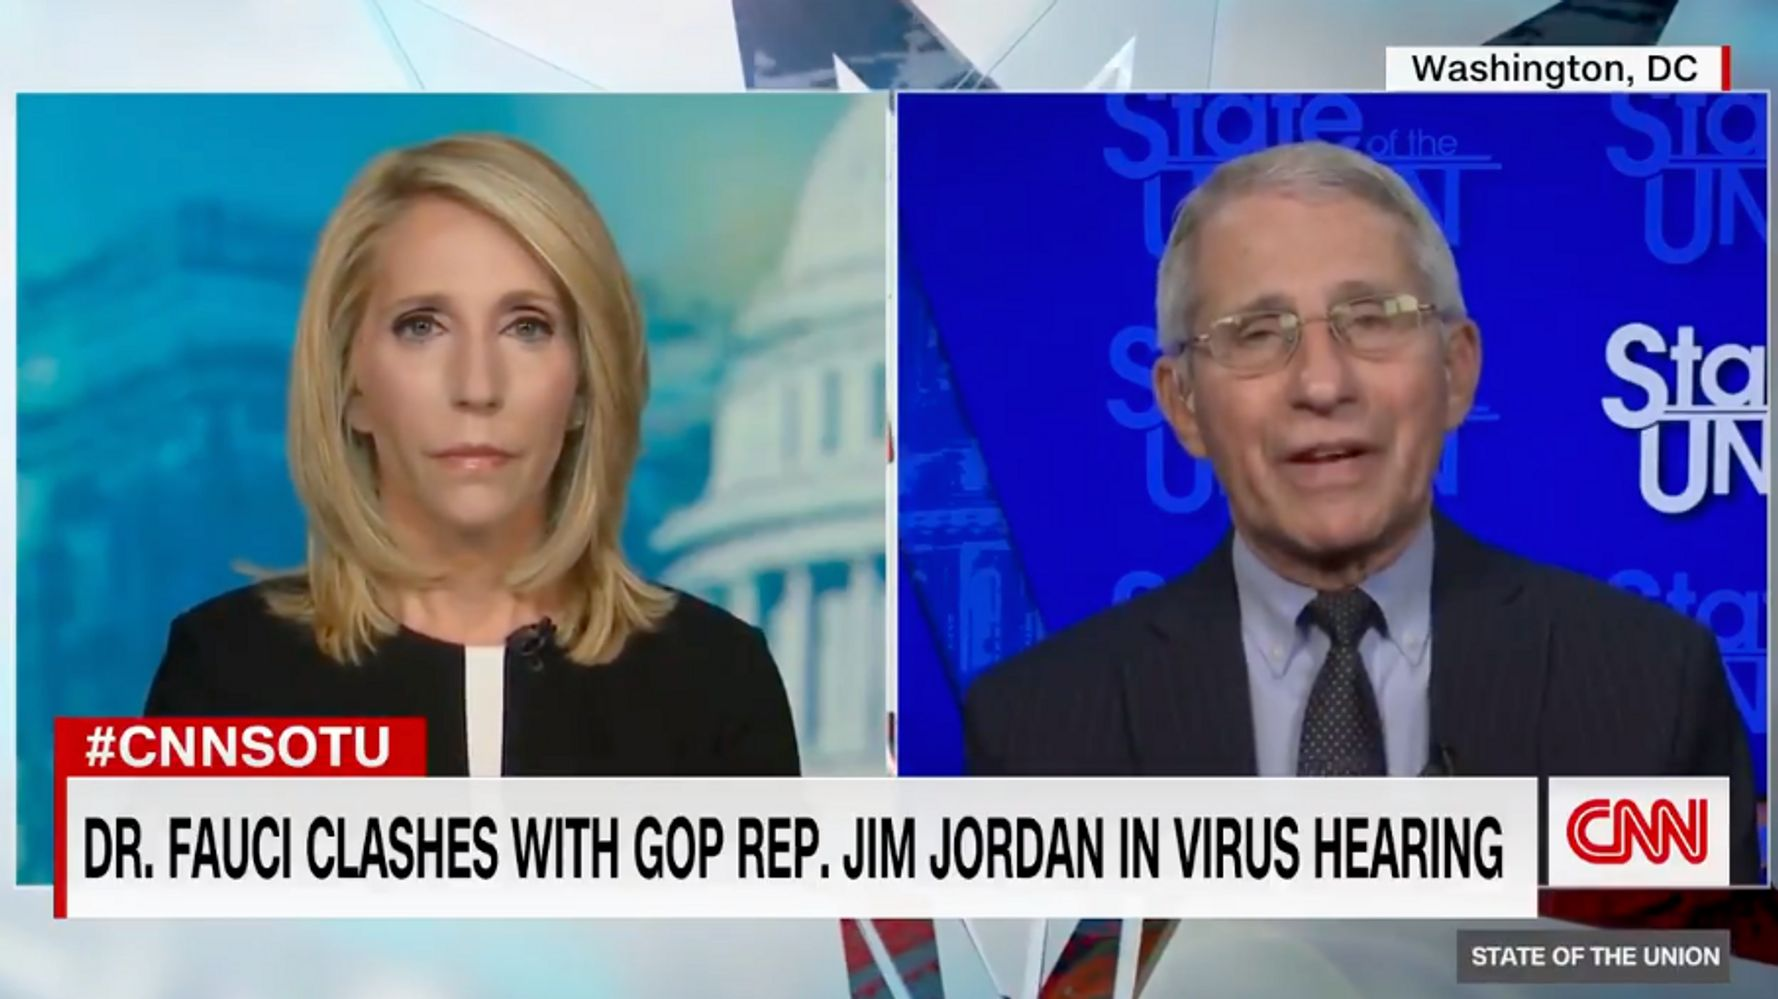 Anthony Fauci On Viral Exchange With Jim Jordan: 'This Has Nothing To Do With Liberties'